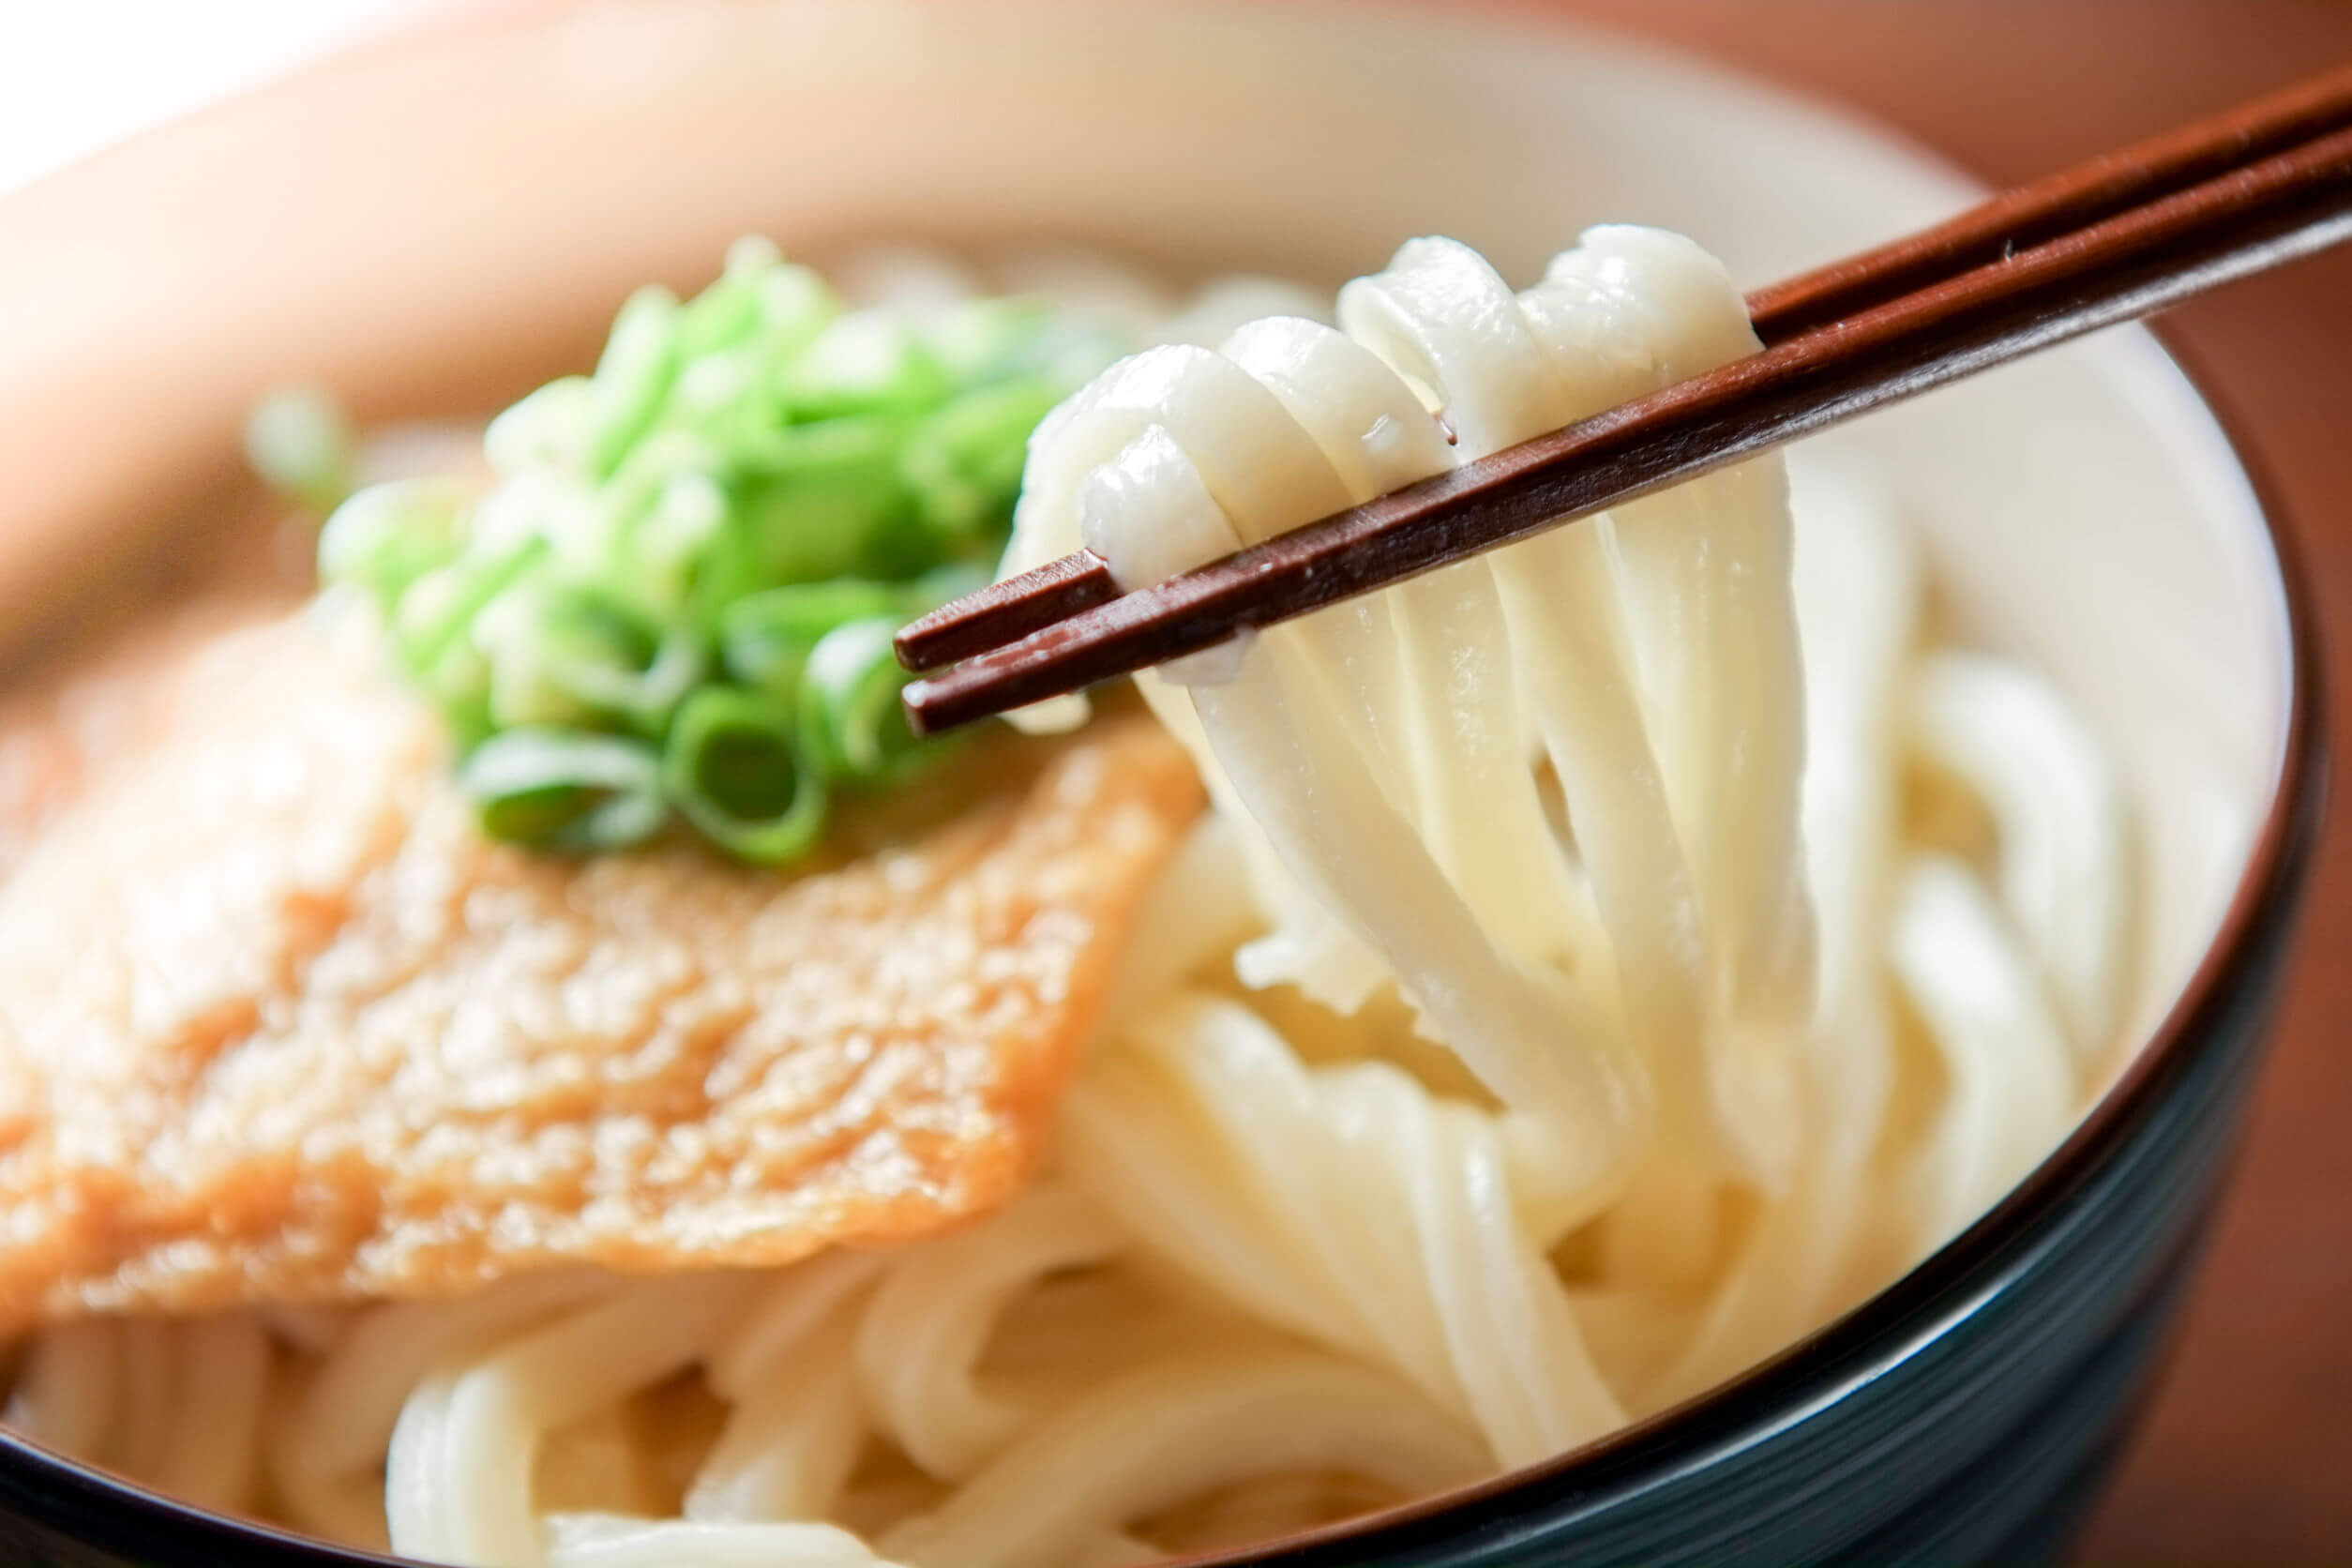 Udon noodles food in japan